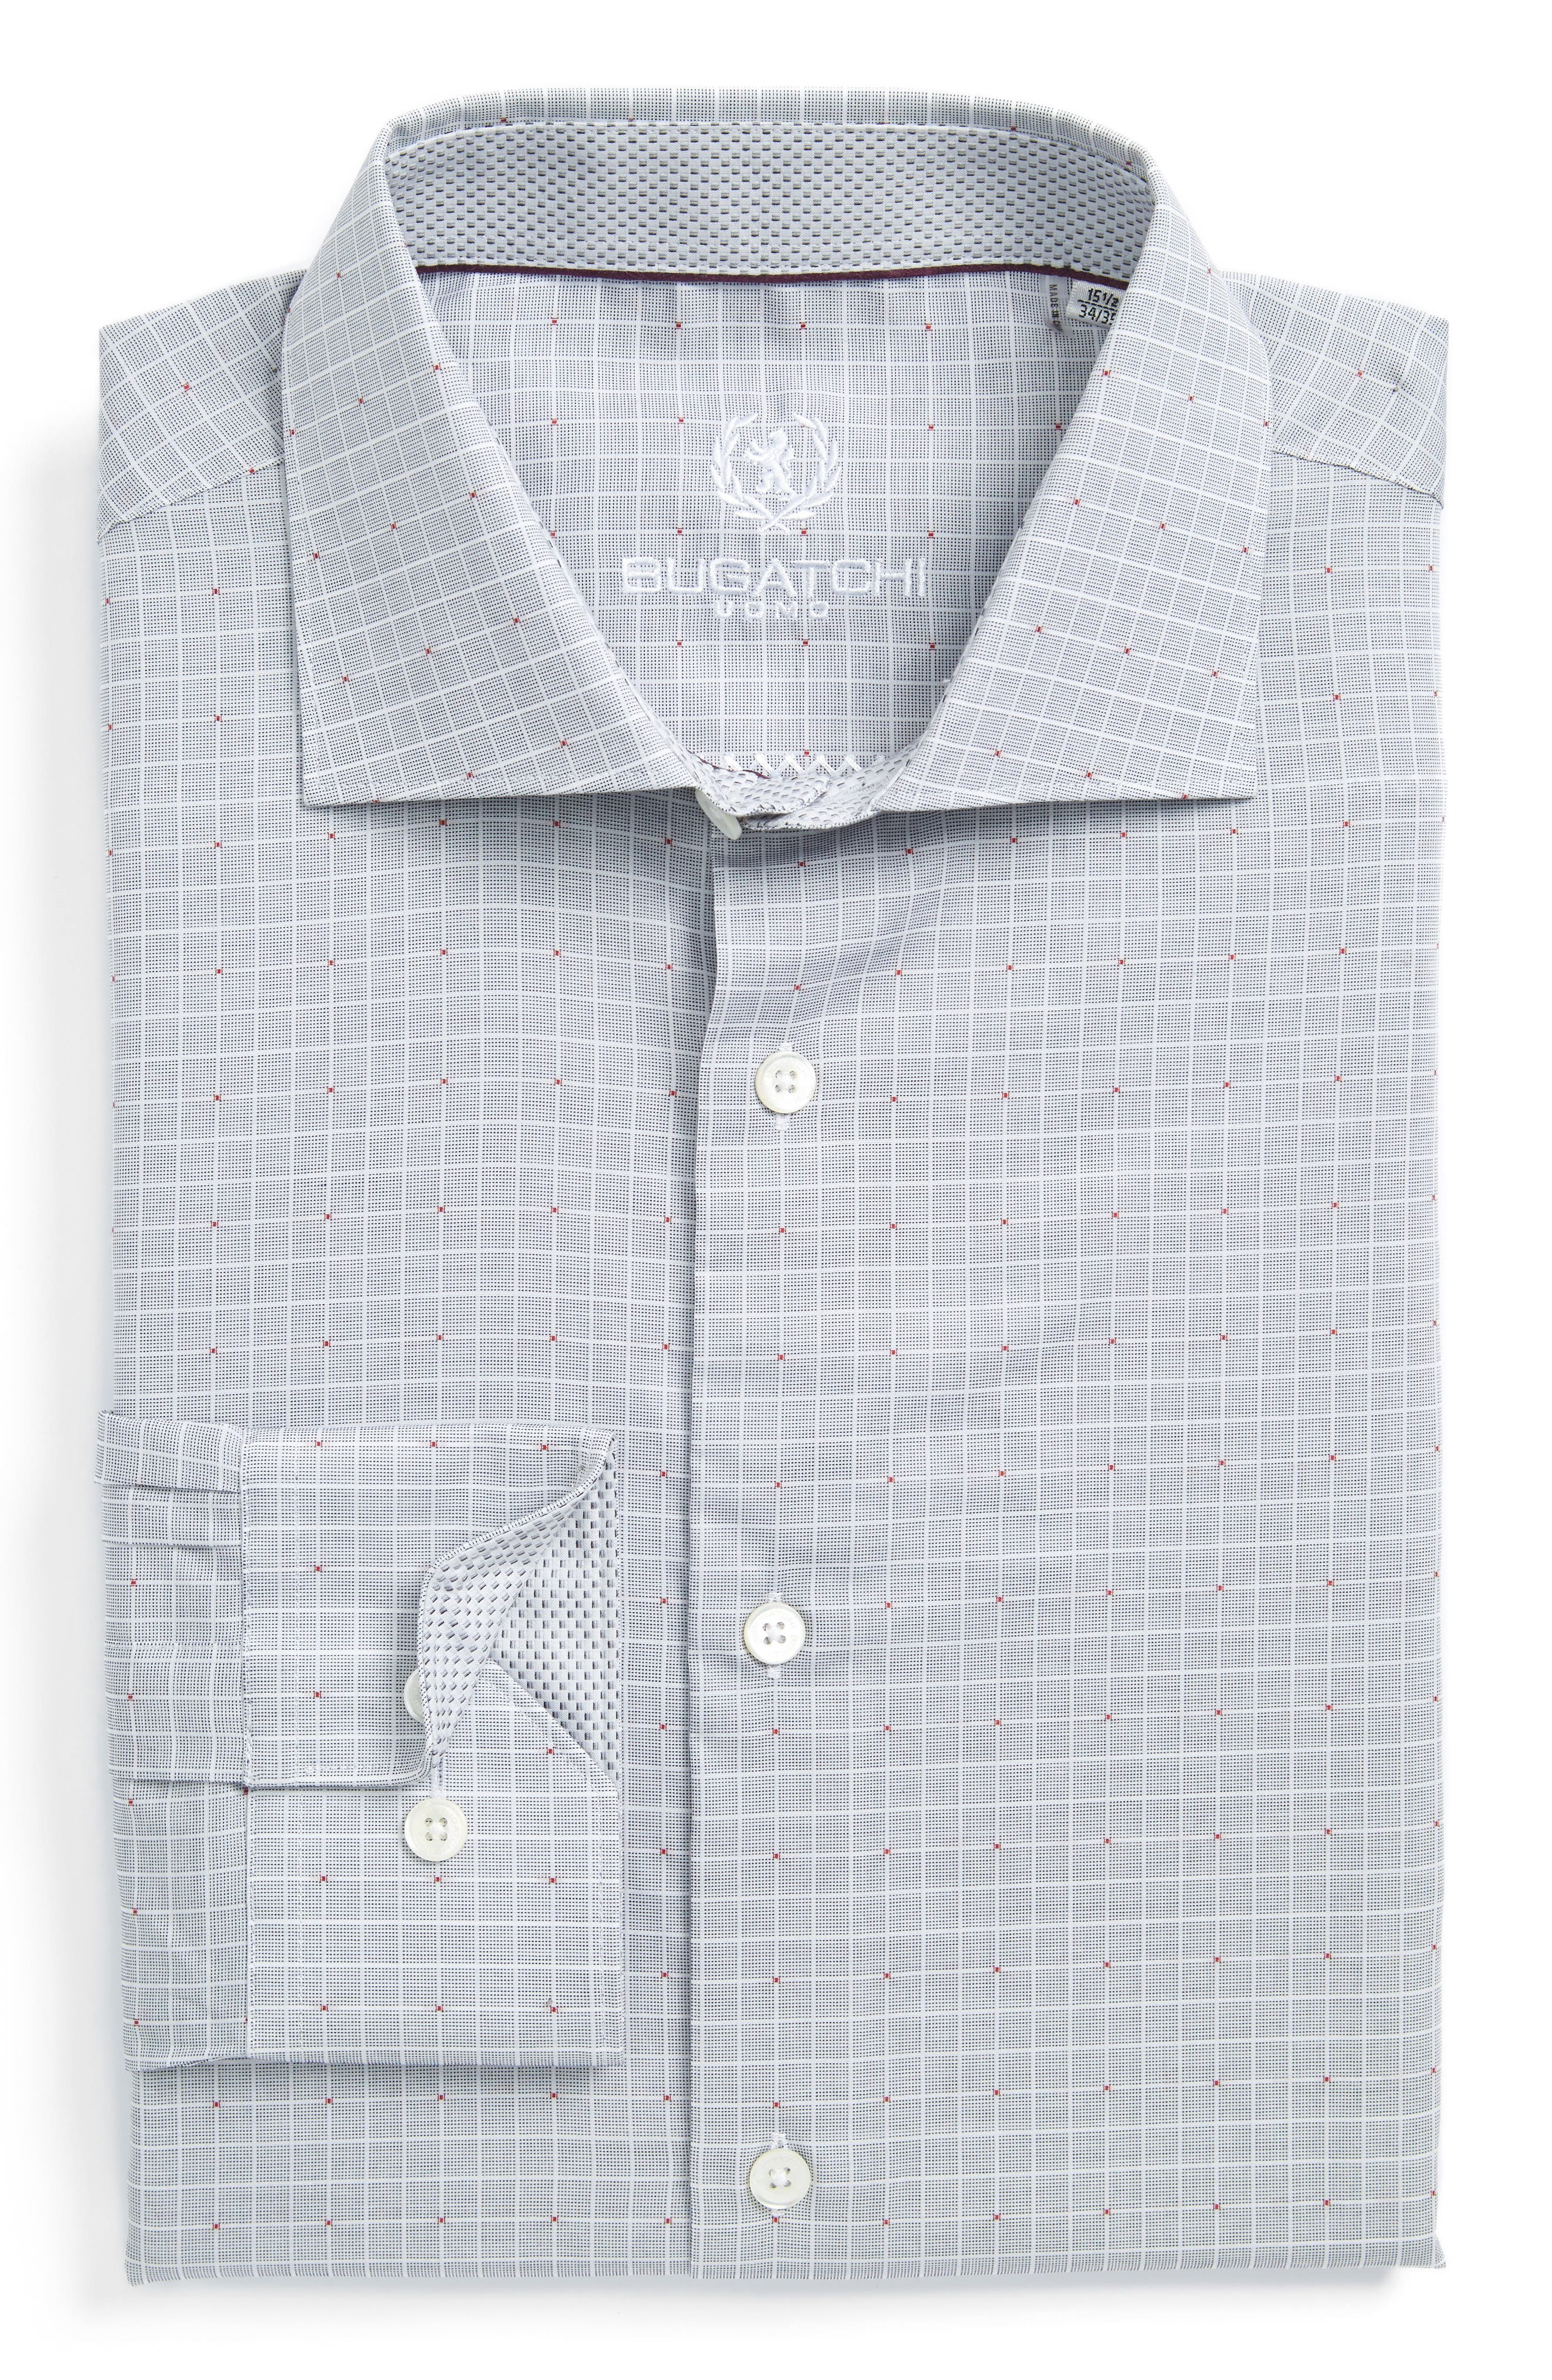 Trim Fit Check Dress Shirt,                             Main thumbnail 1, color,                             Platinum